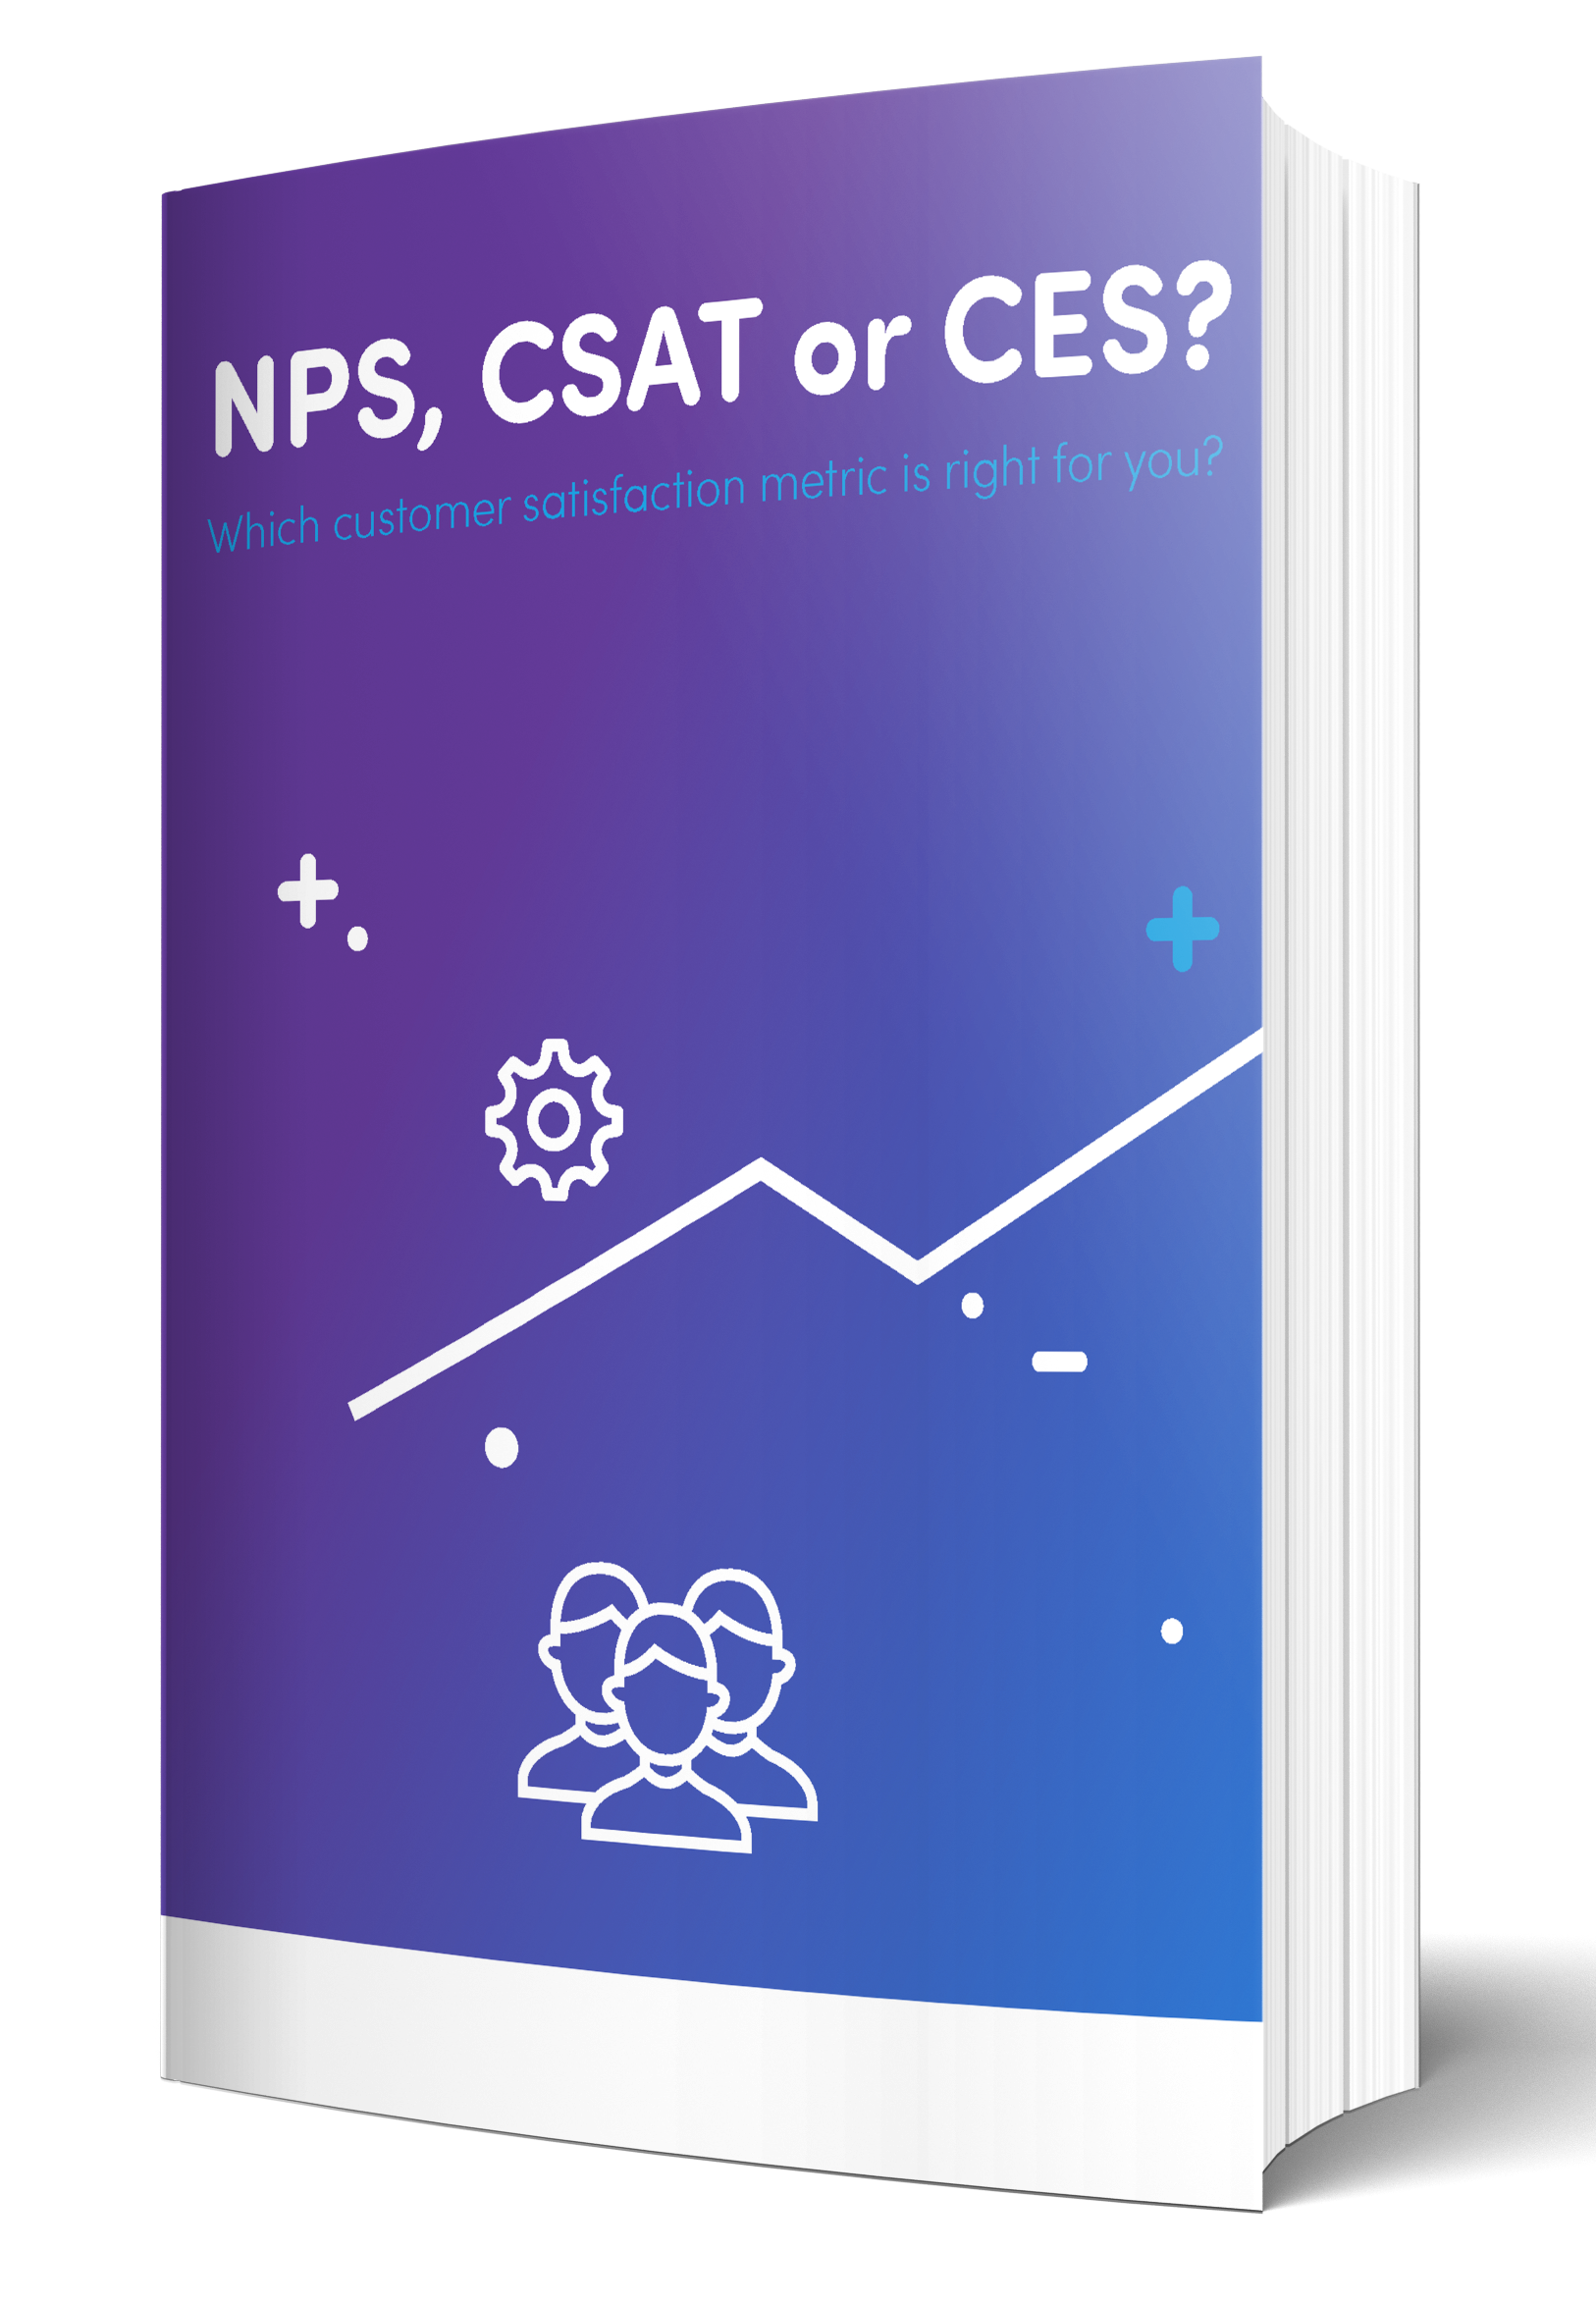 nps csat ces hello customer ebook